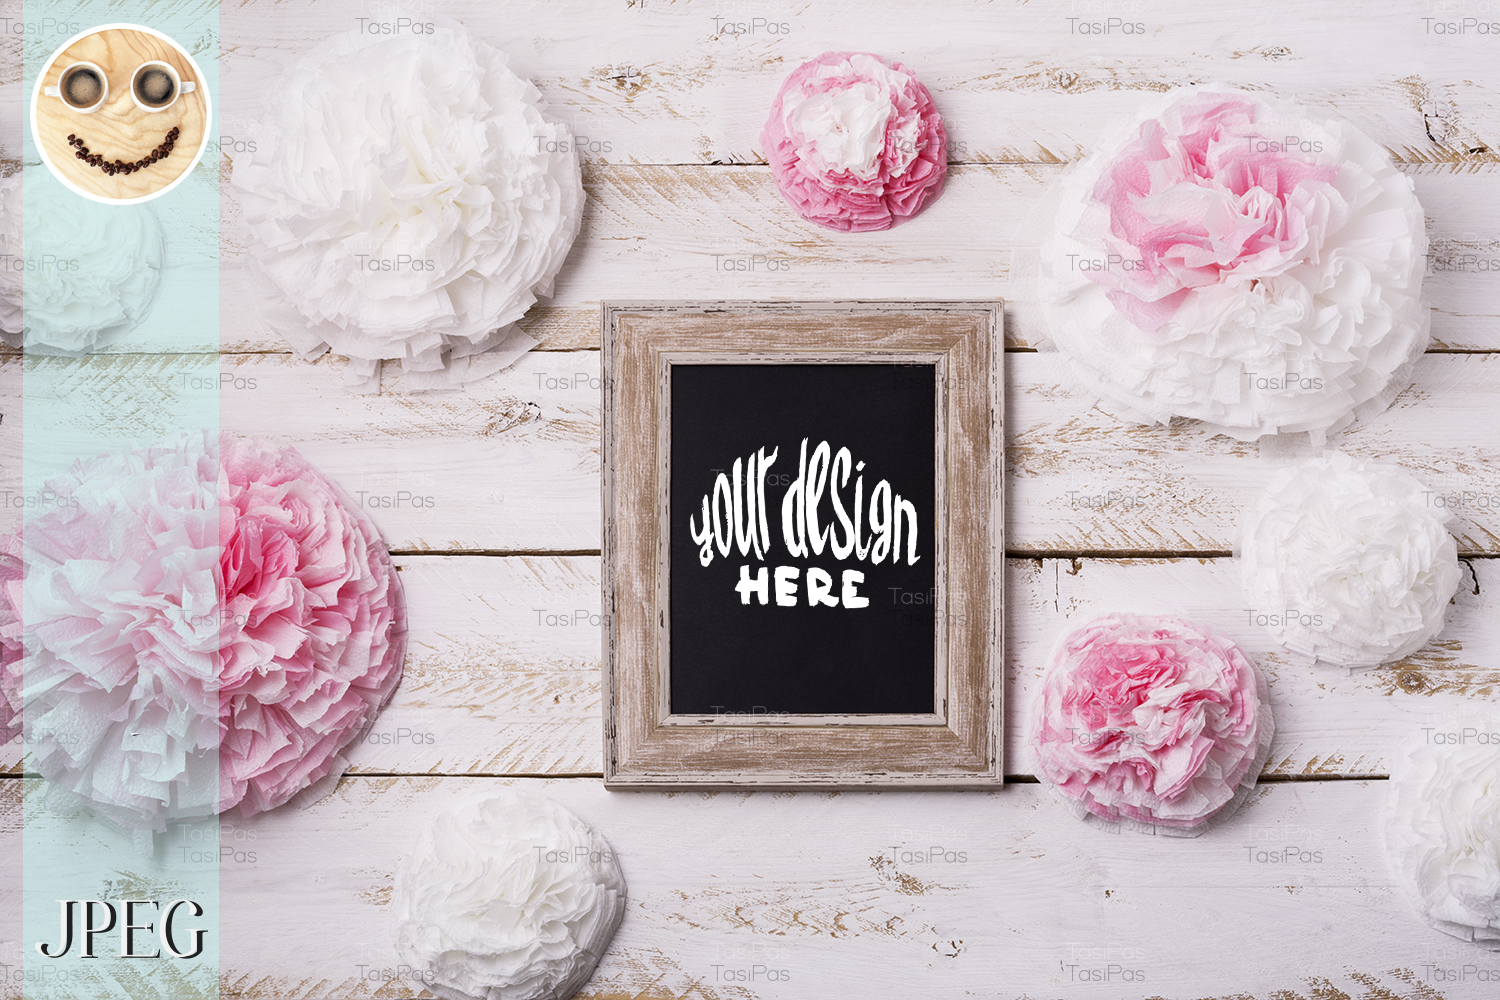 Download Free Wooden Frame Mockup With Paper Flowers Graphic By Tasipas for Cricut Explore, Silhouette and other cutting machines.